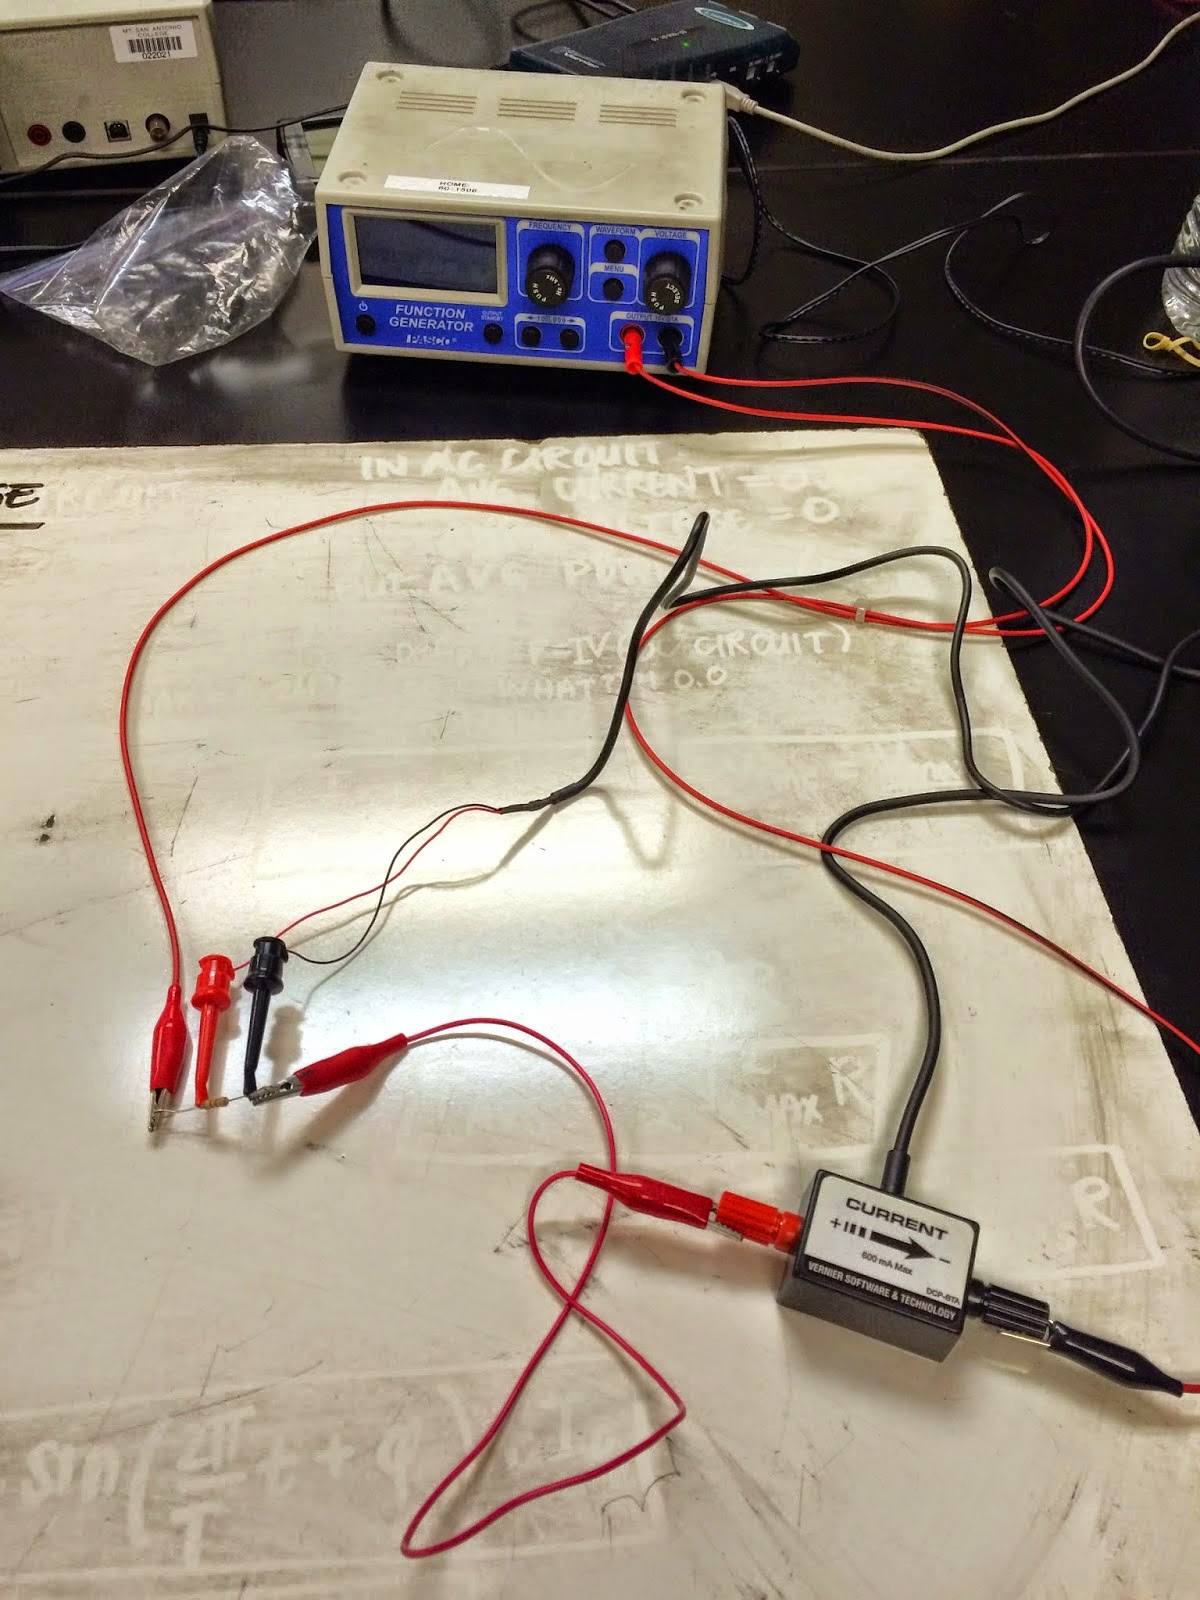 Using Those Values, Percent Difference Was Calculated For The Voltage And  Current